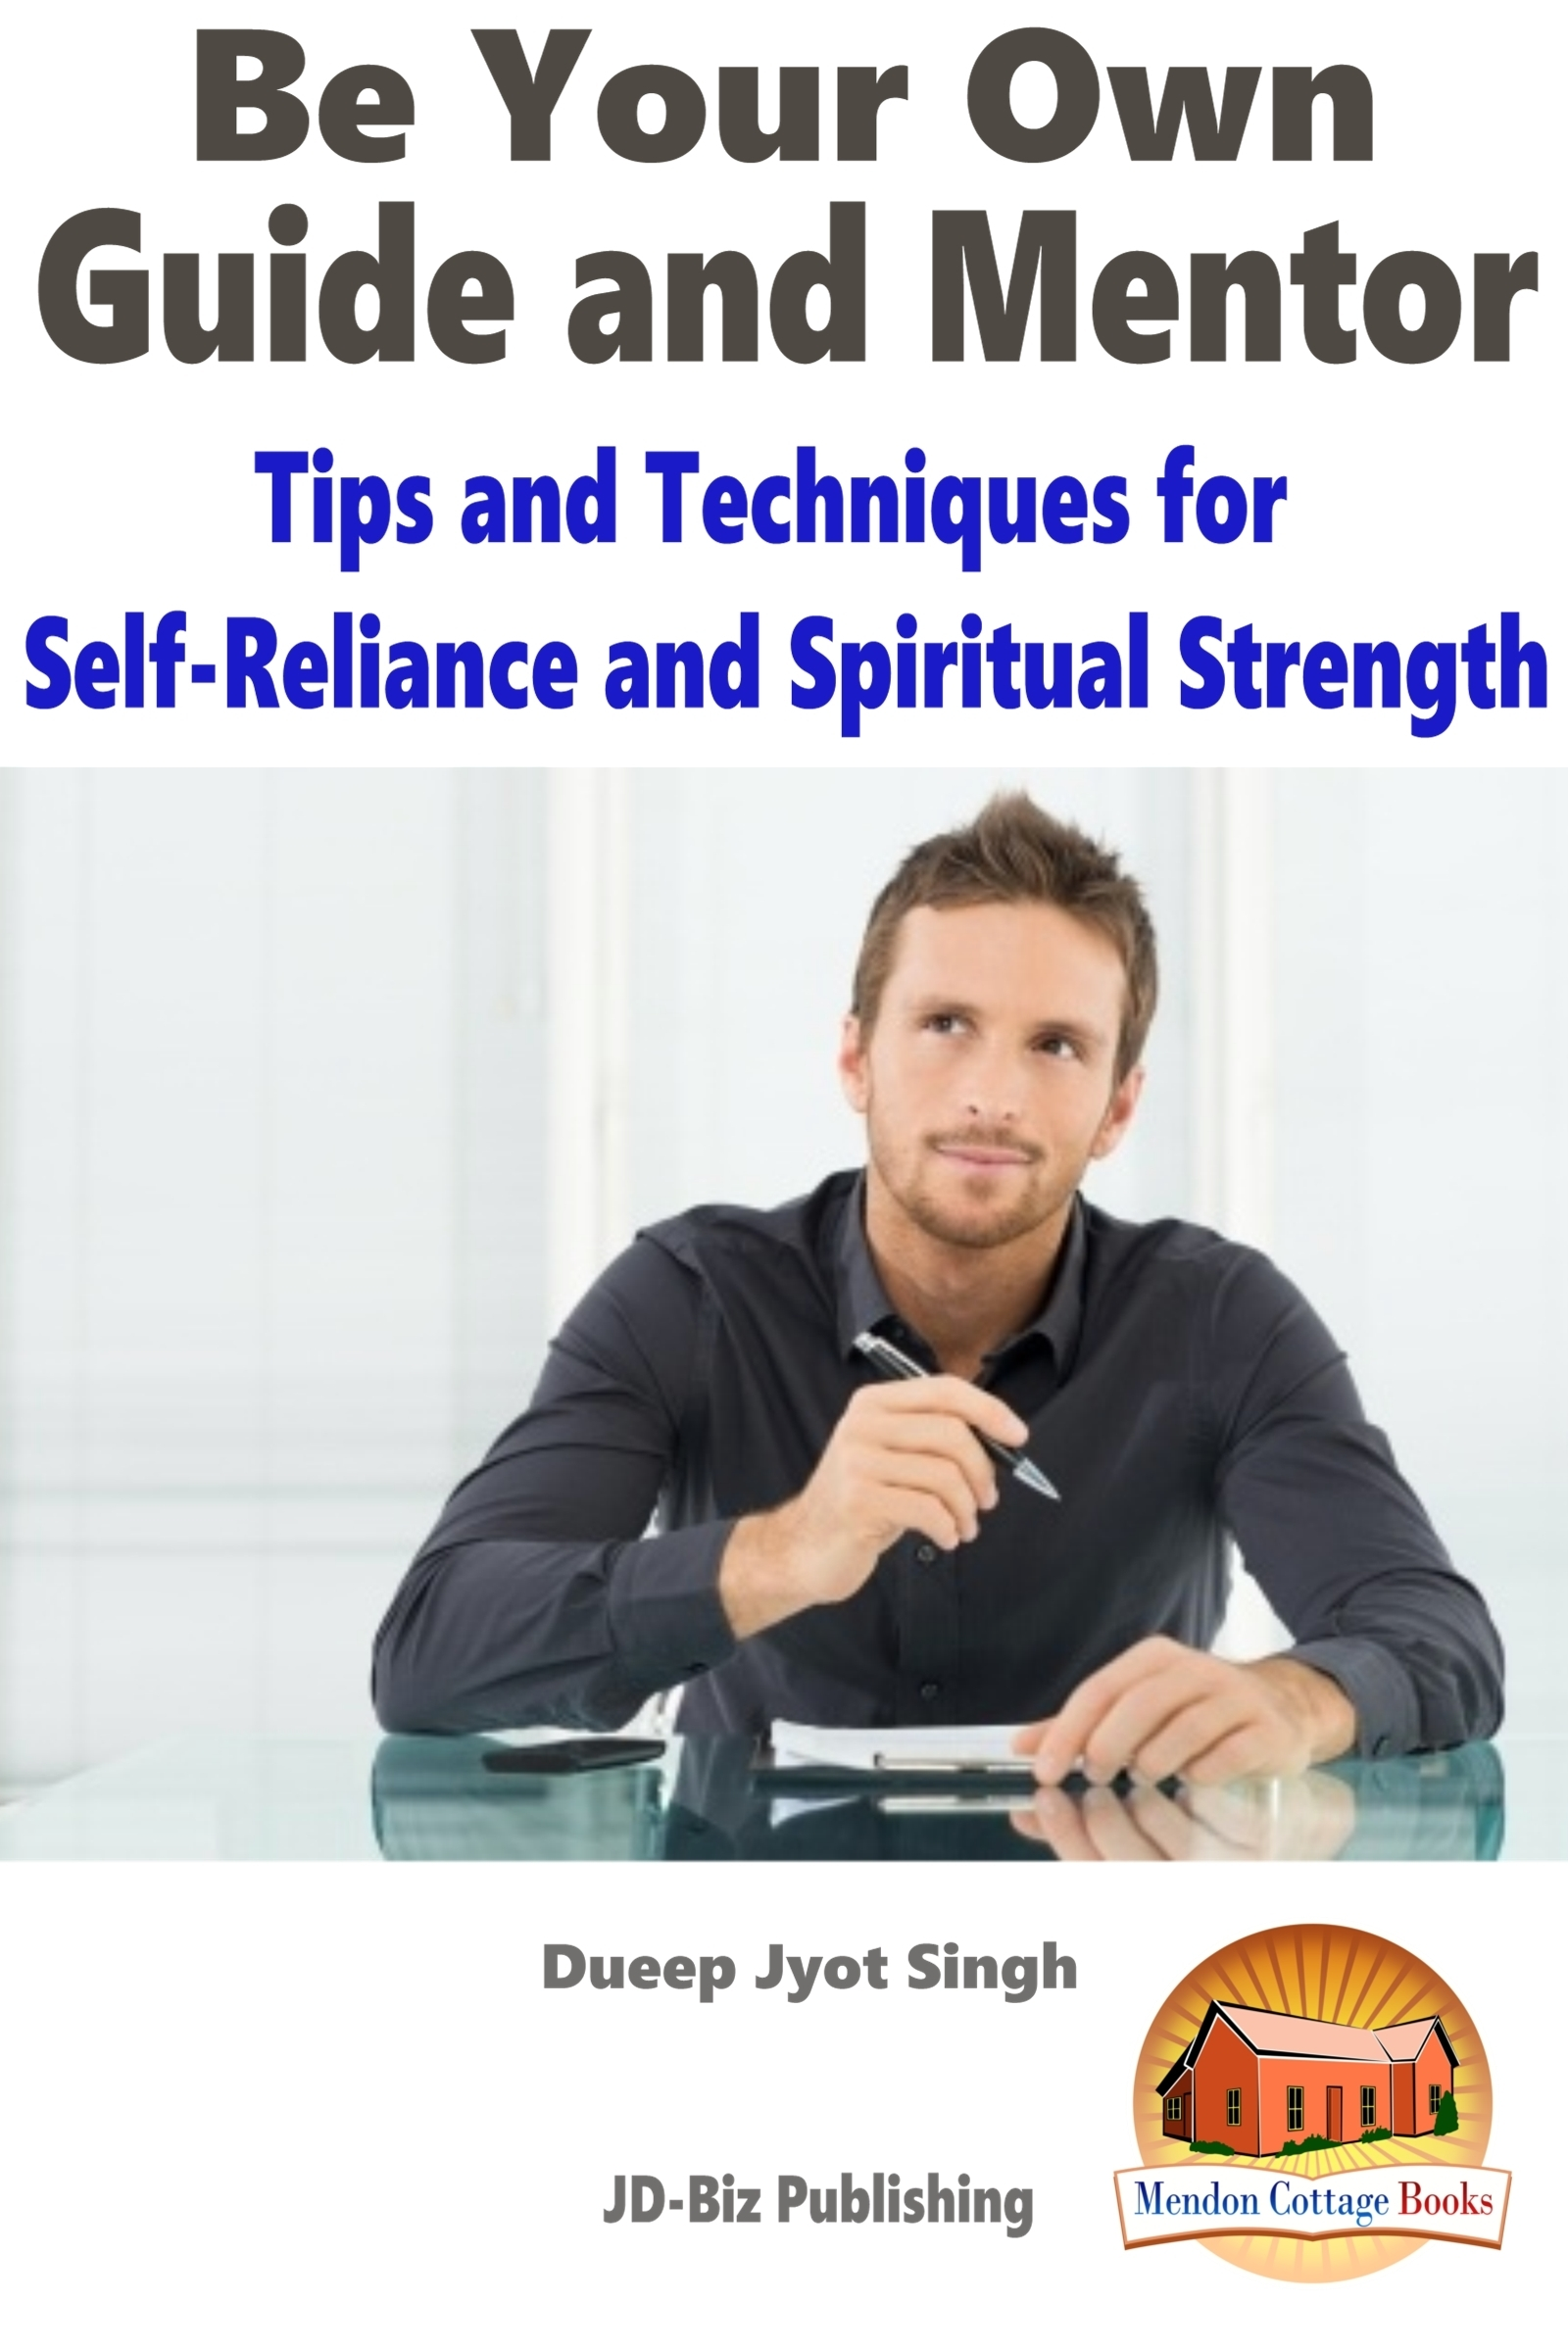 Be Your Own Guide and Mentor: Tips and Techniques for Self-Reliance and Spiritual Strength Dueep Jyot Singh